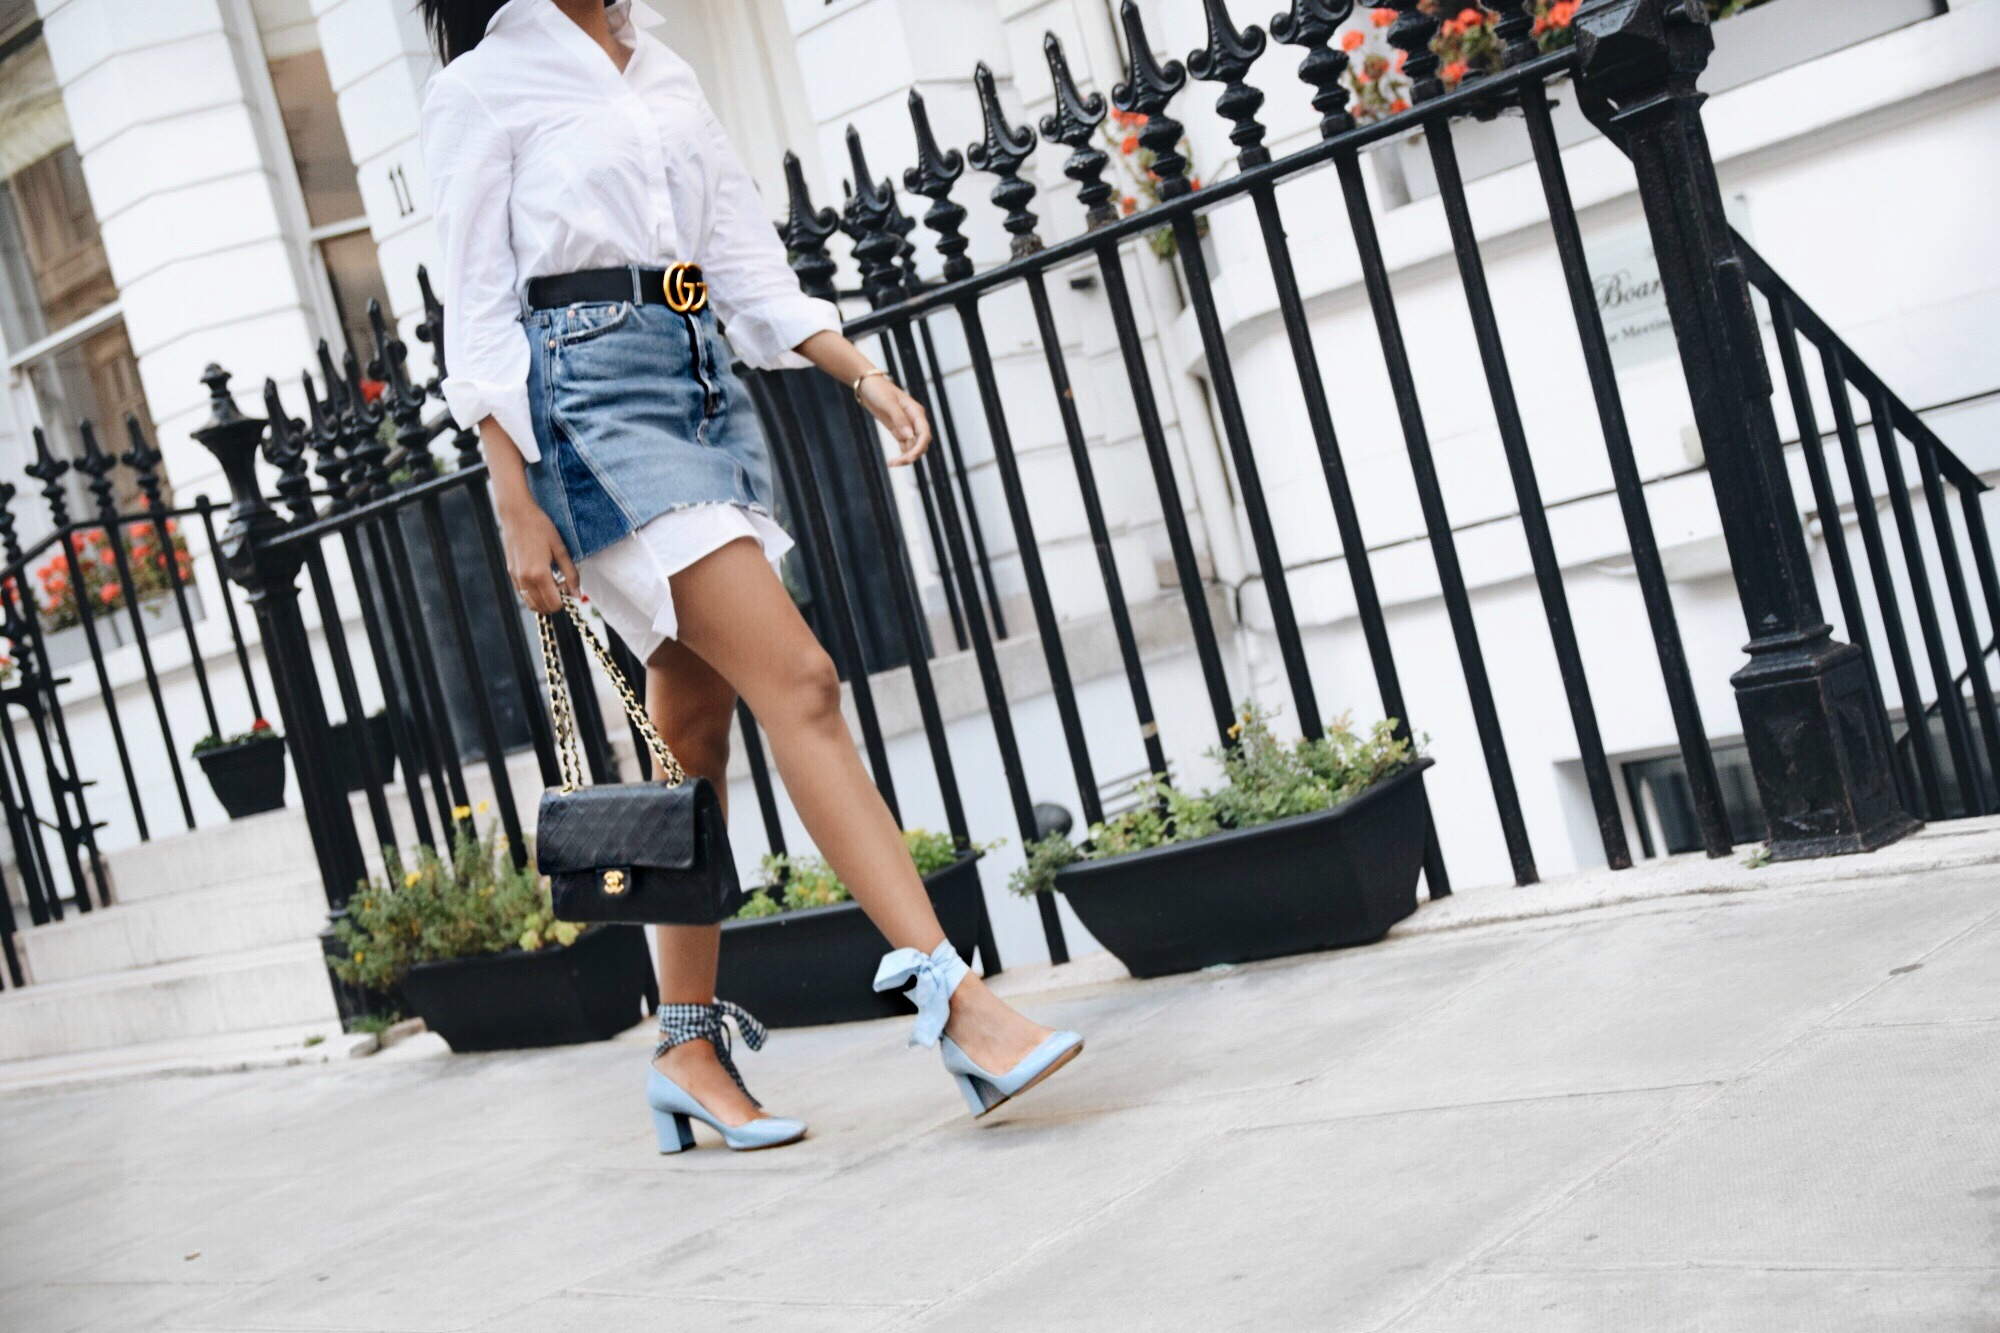 Back In London Town // London Travel Diary // Los Angeles Fashion Blogger Daphne Blunt // GRLFRND Denim Skirt // Acne Shirt Dress // Miu Miu Pastel Blue Gingham Wrap Mid Heels // Gucci Marmont Belt // Chanel Classic Flap Bag: To Style, With Love